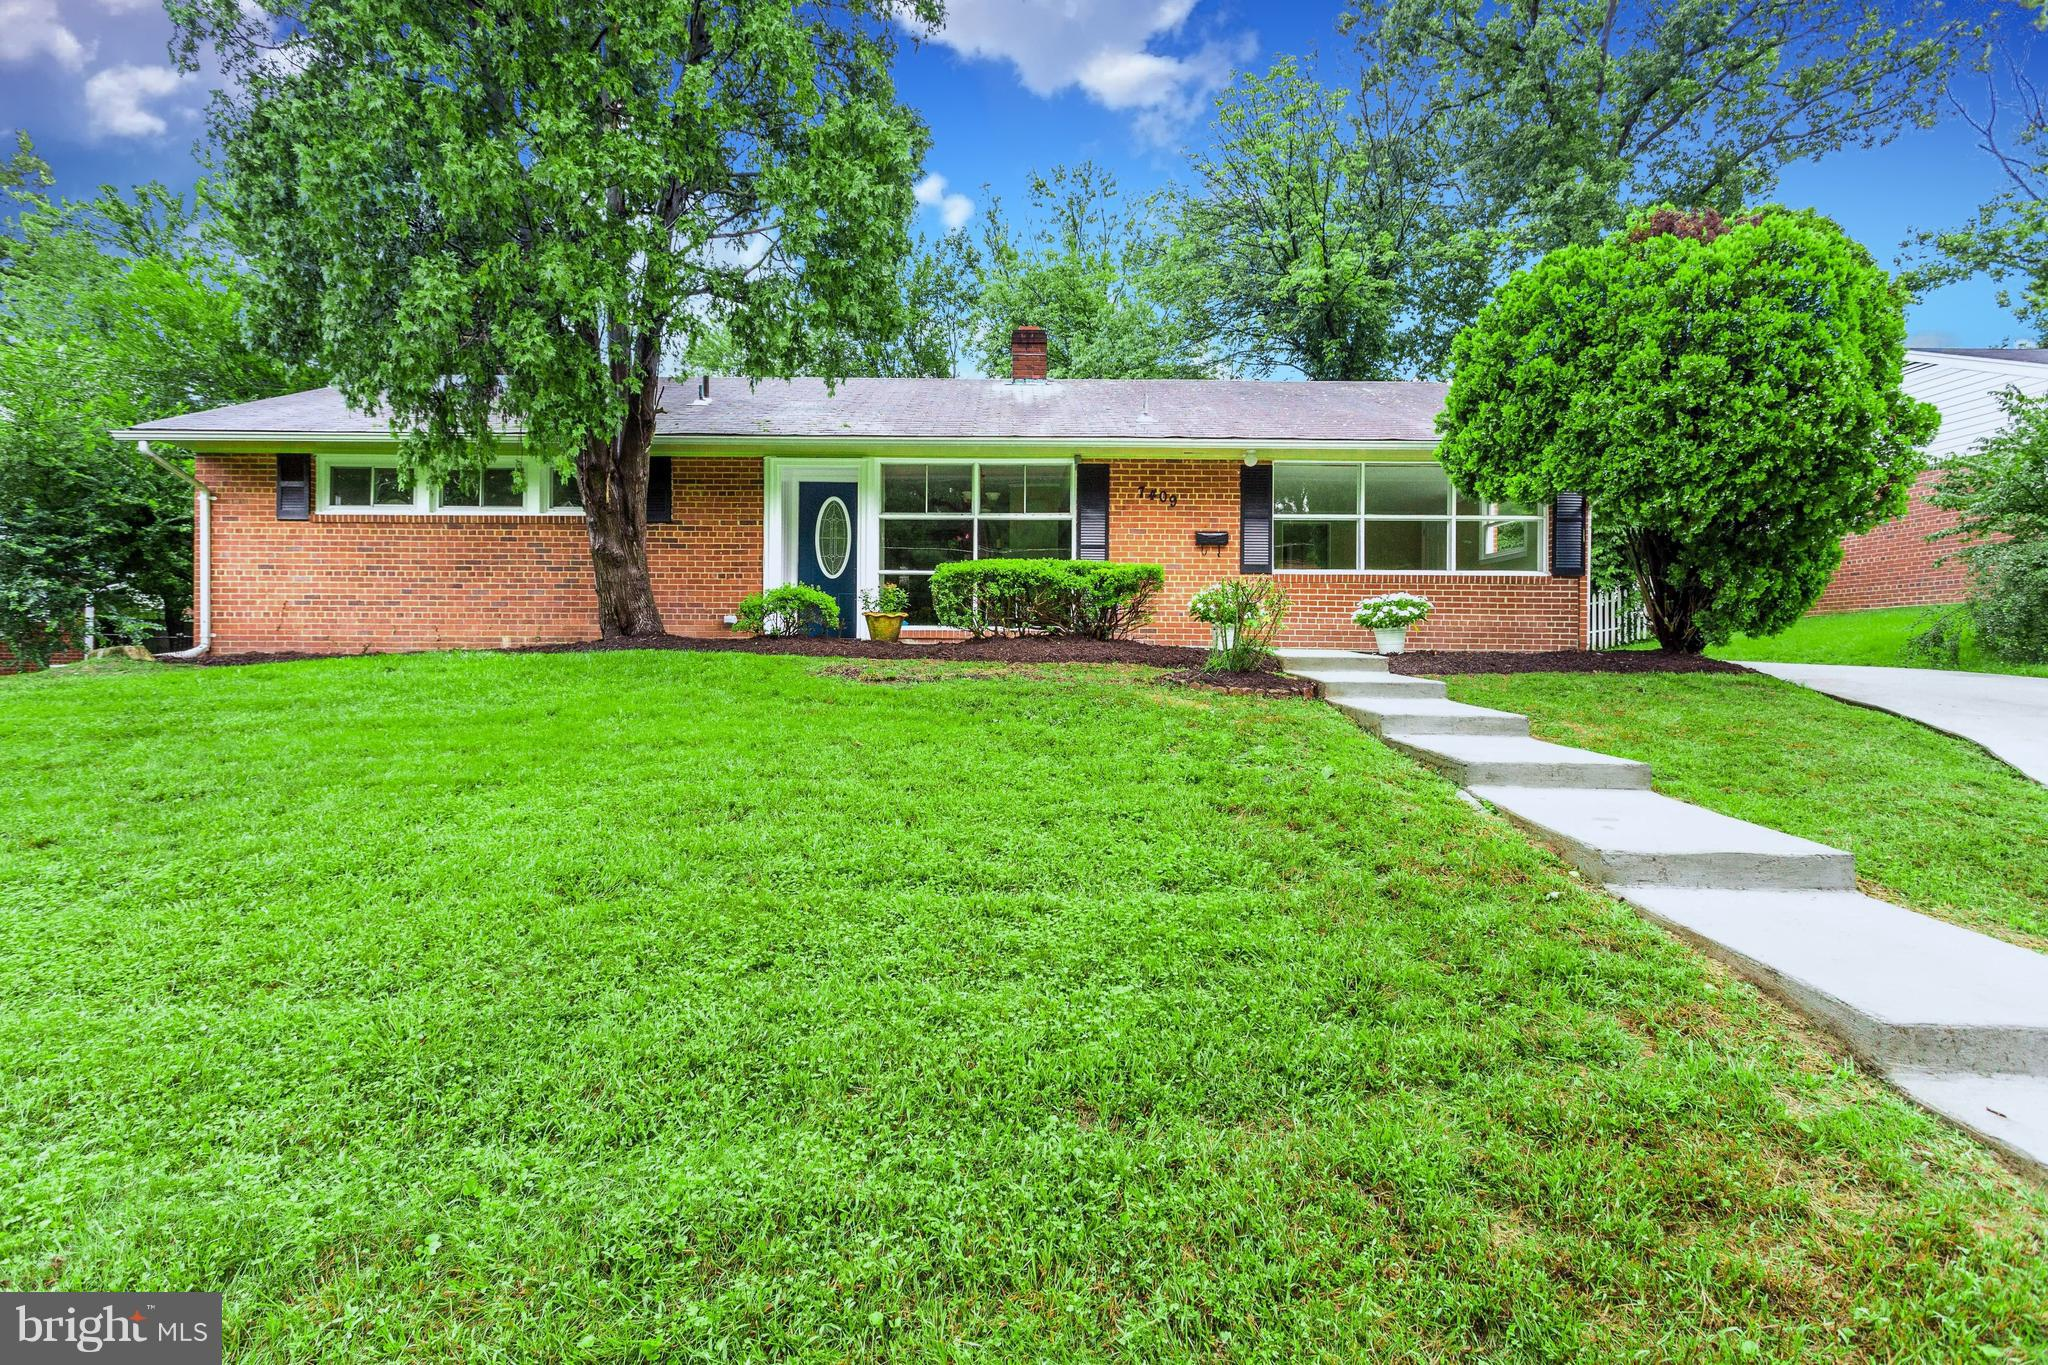 New Price!!  Main Level Living! GREAT LOCATION! Inside the beltway. 1 minute to I-495.. 4 Bedrooms 2 Full Baths, 1 enlarged bedroom/Office,  Beautiful  kitchen Opens to Family Room. New Stainless Steel & Granite,  New Carpet, Freshly Painted. Quality Windows.  Fenced Back Yard. A Commuters Dream. Open Sunday1-4pm